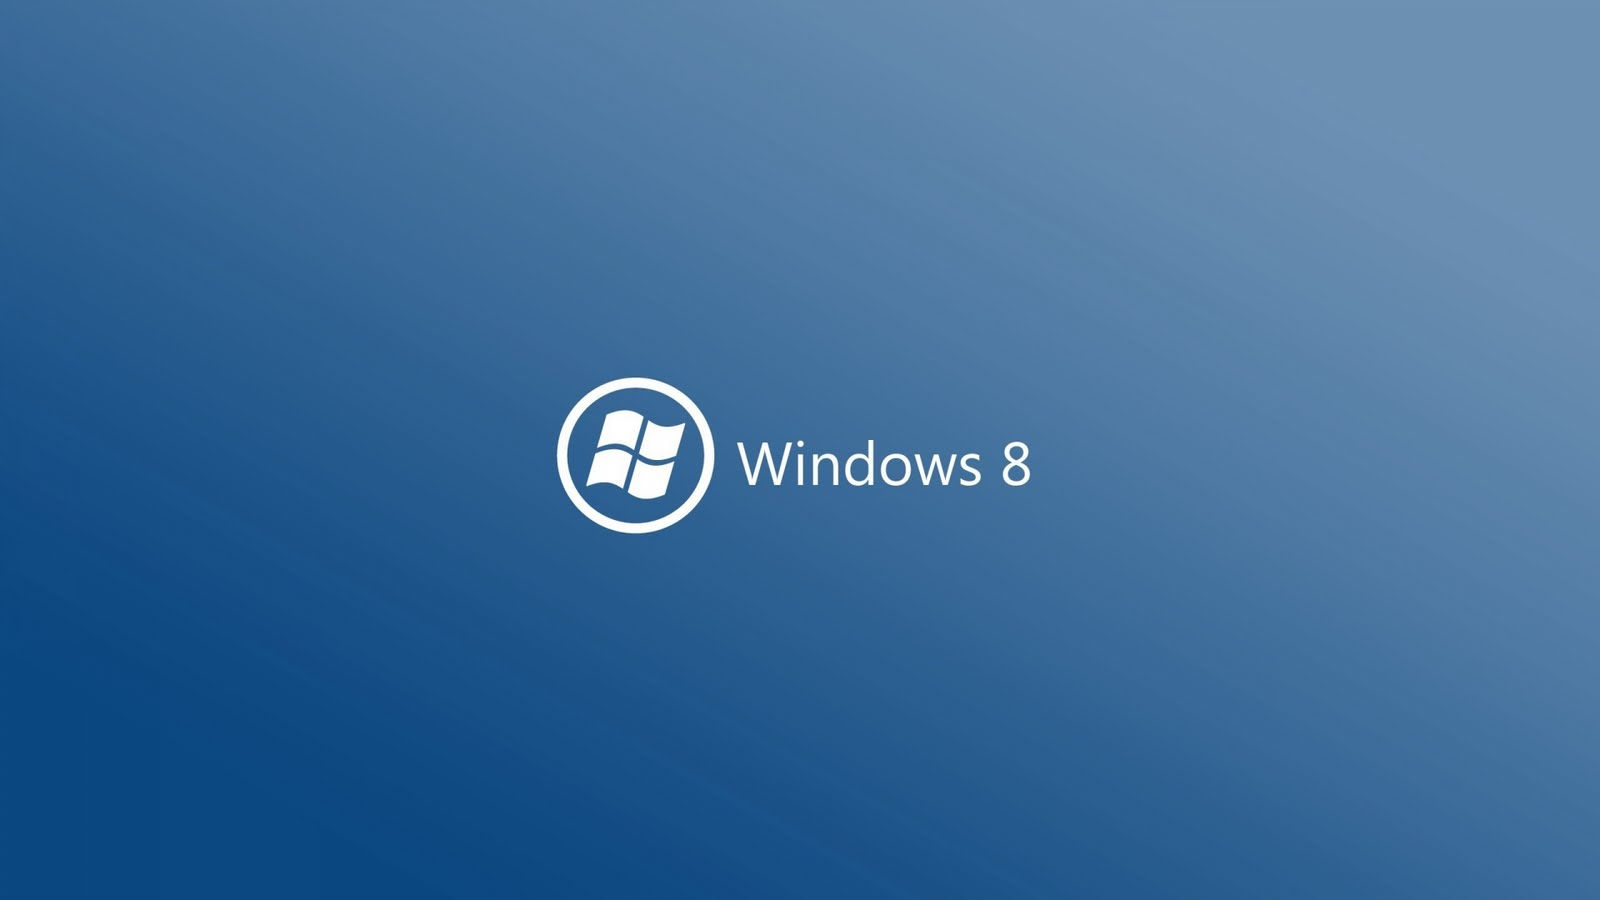 Most Viewed Symbol Wallpapers: Top 10 Most Beautiful, Popular, Best HD Windows 8